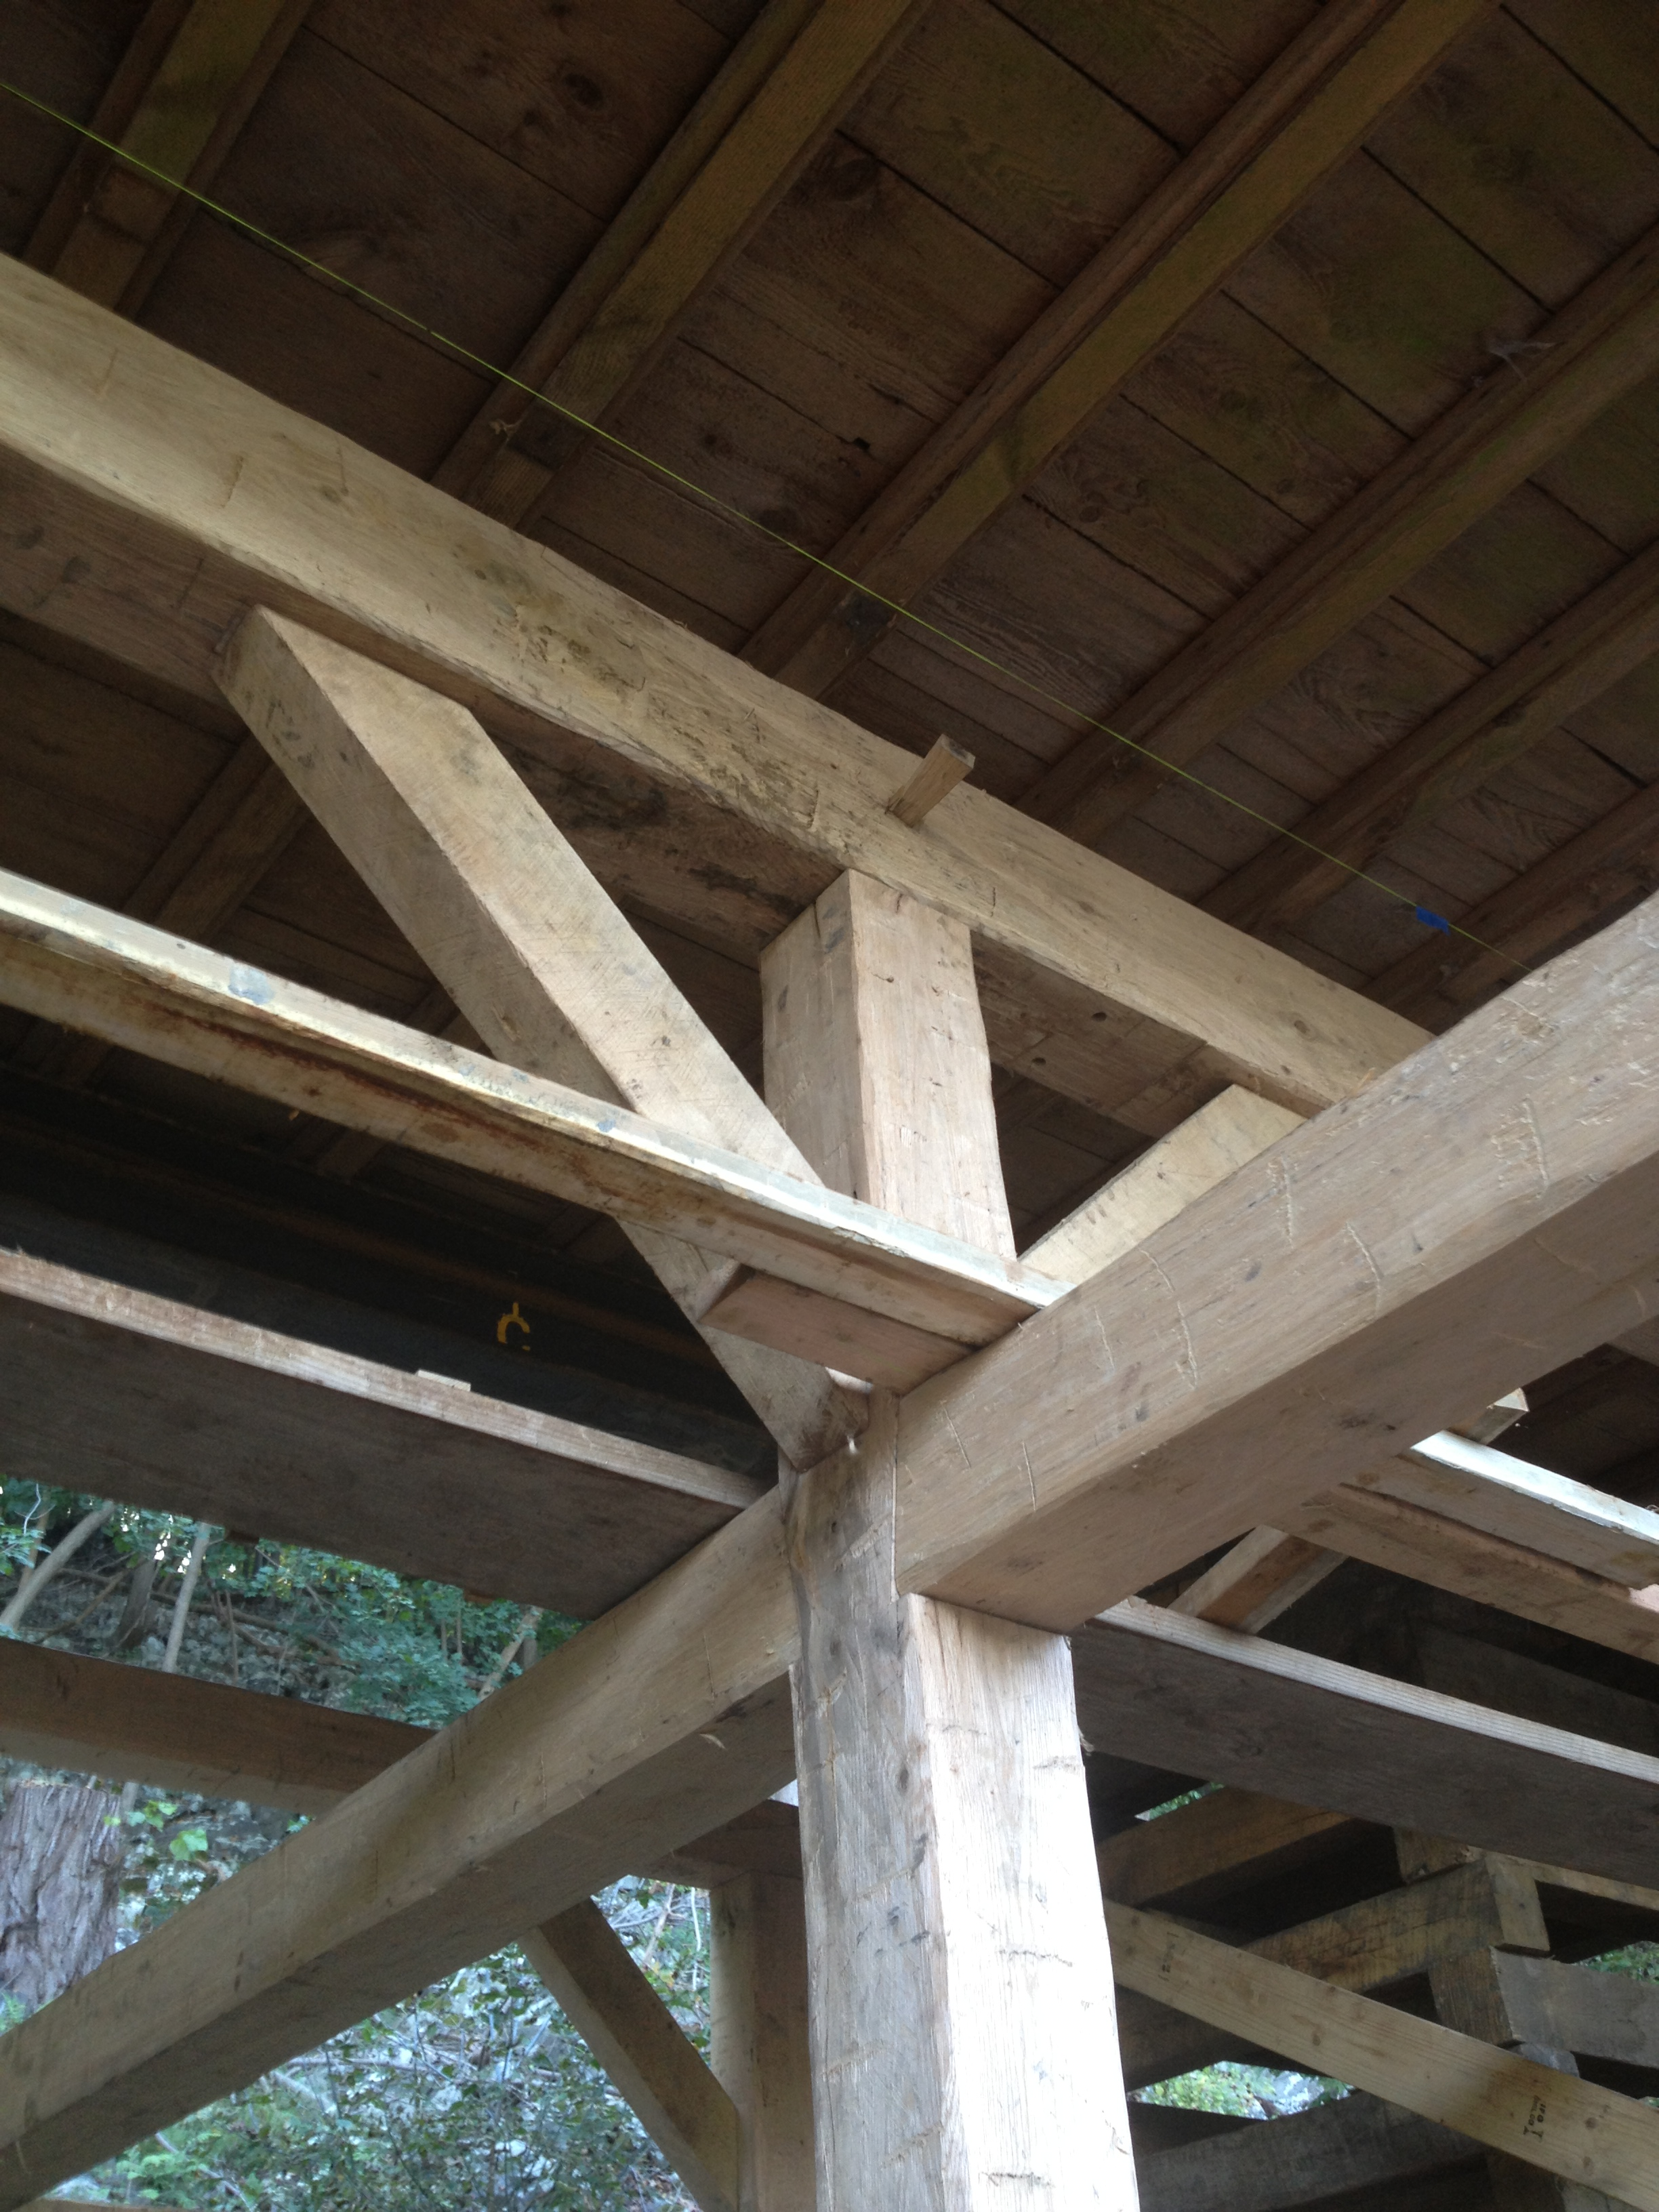 terri feralio - timber framing with mortise and tenon joints.JPG